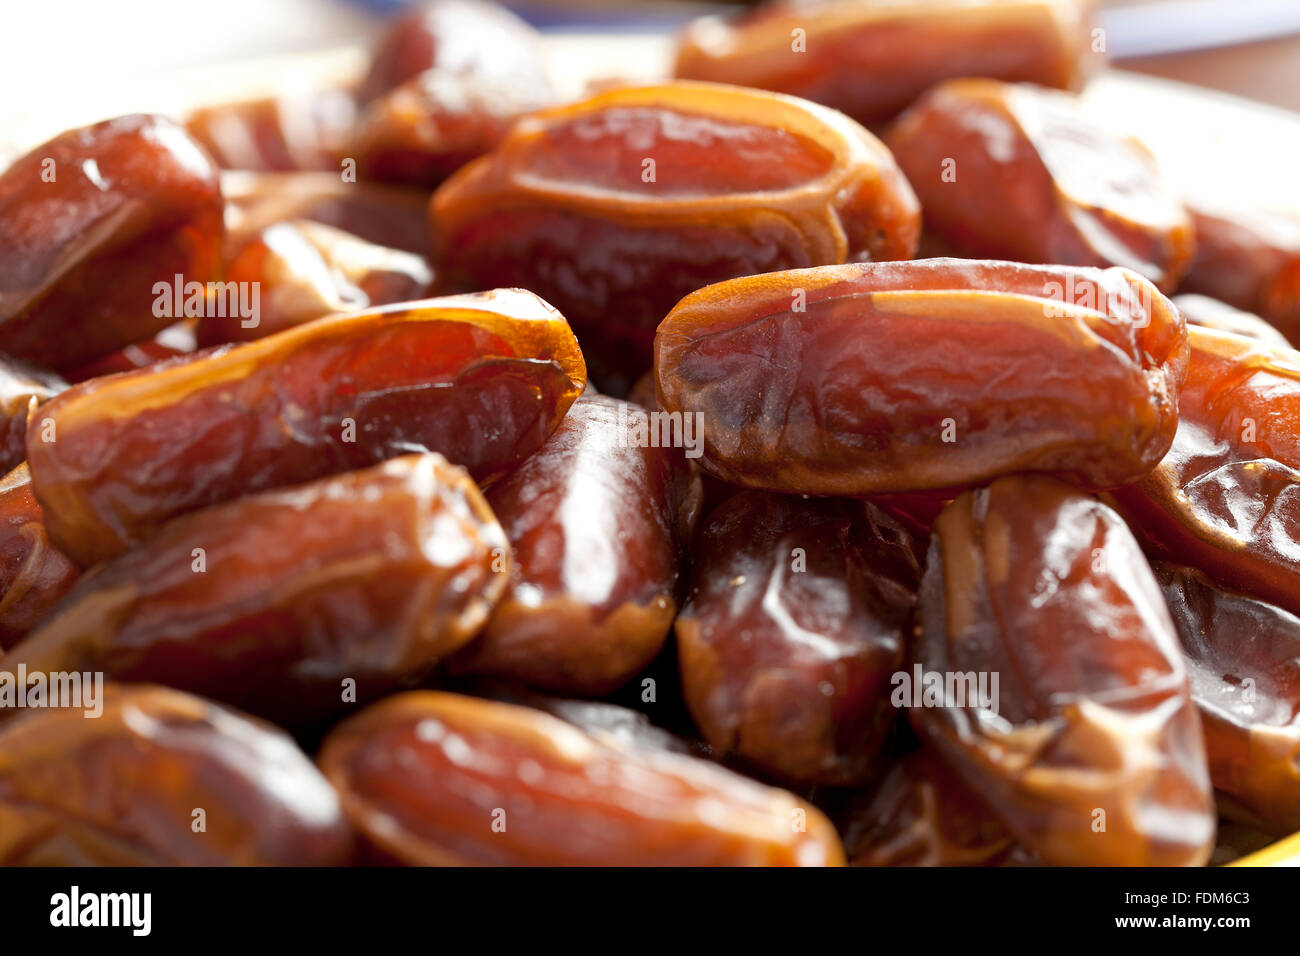 Heap of preserved dates close up - Stock Image